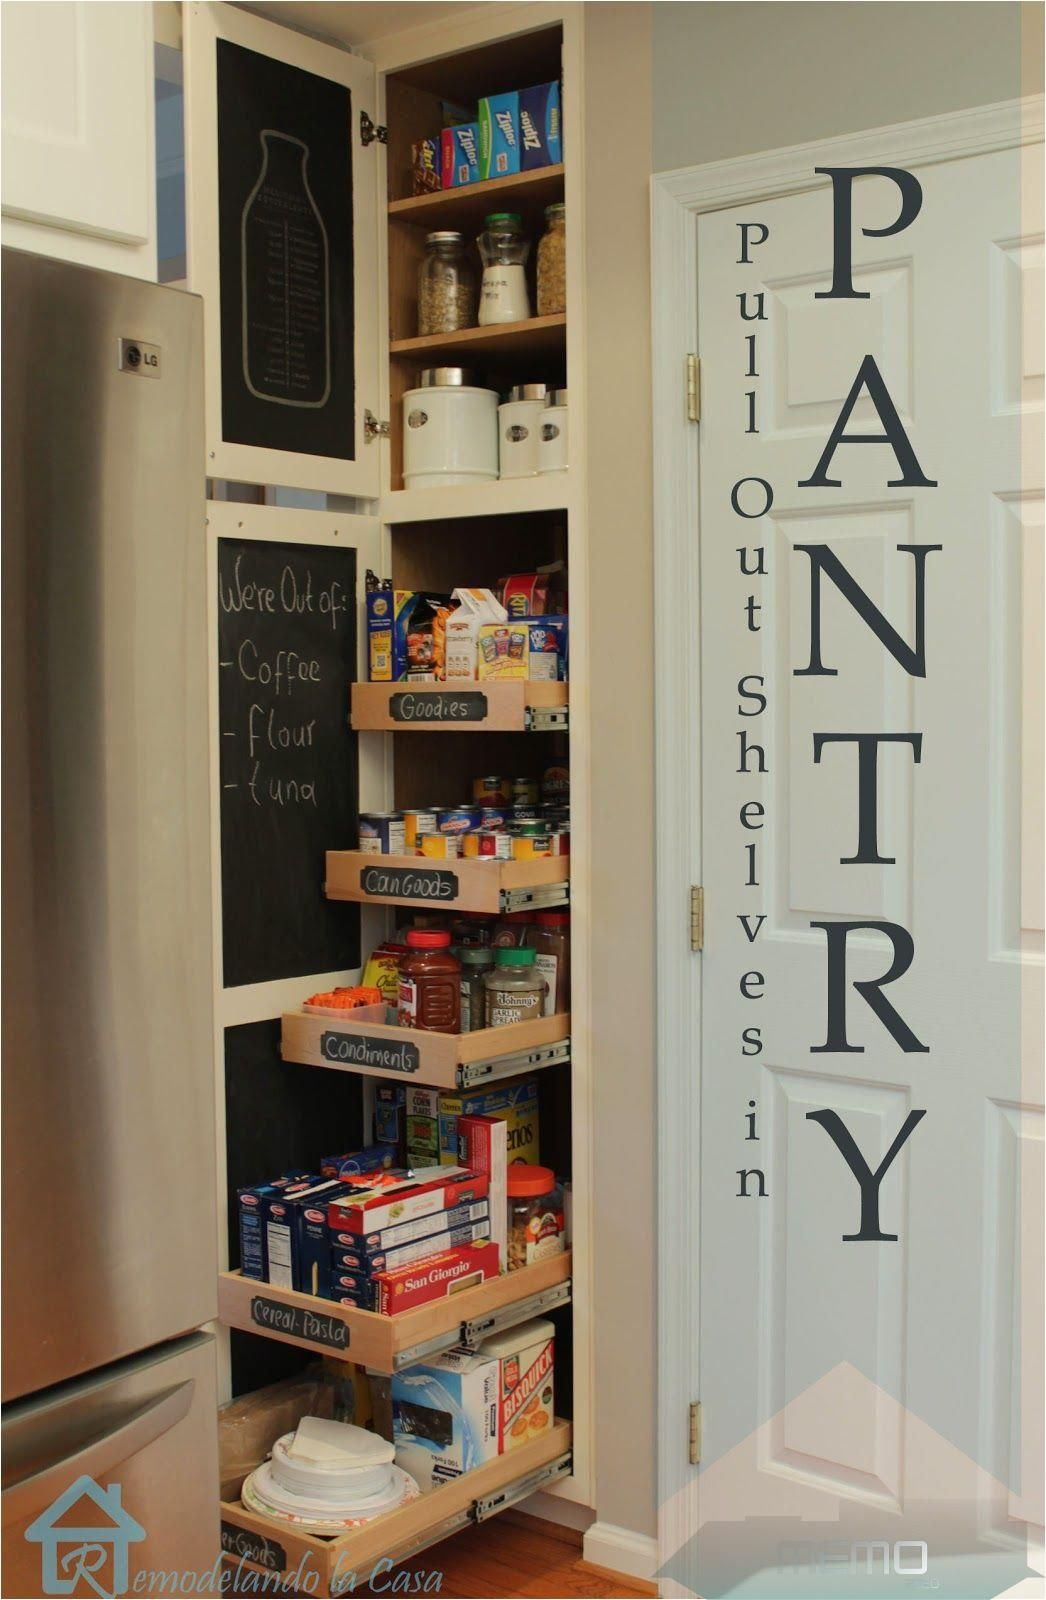 Jan 13, 2016 How to install pull out shelves in skinny